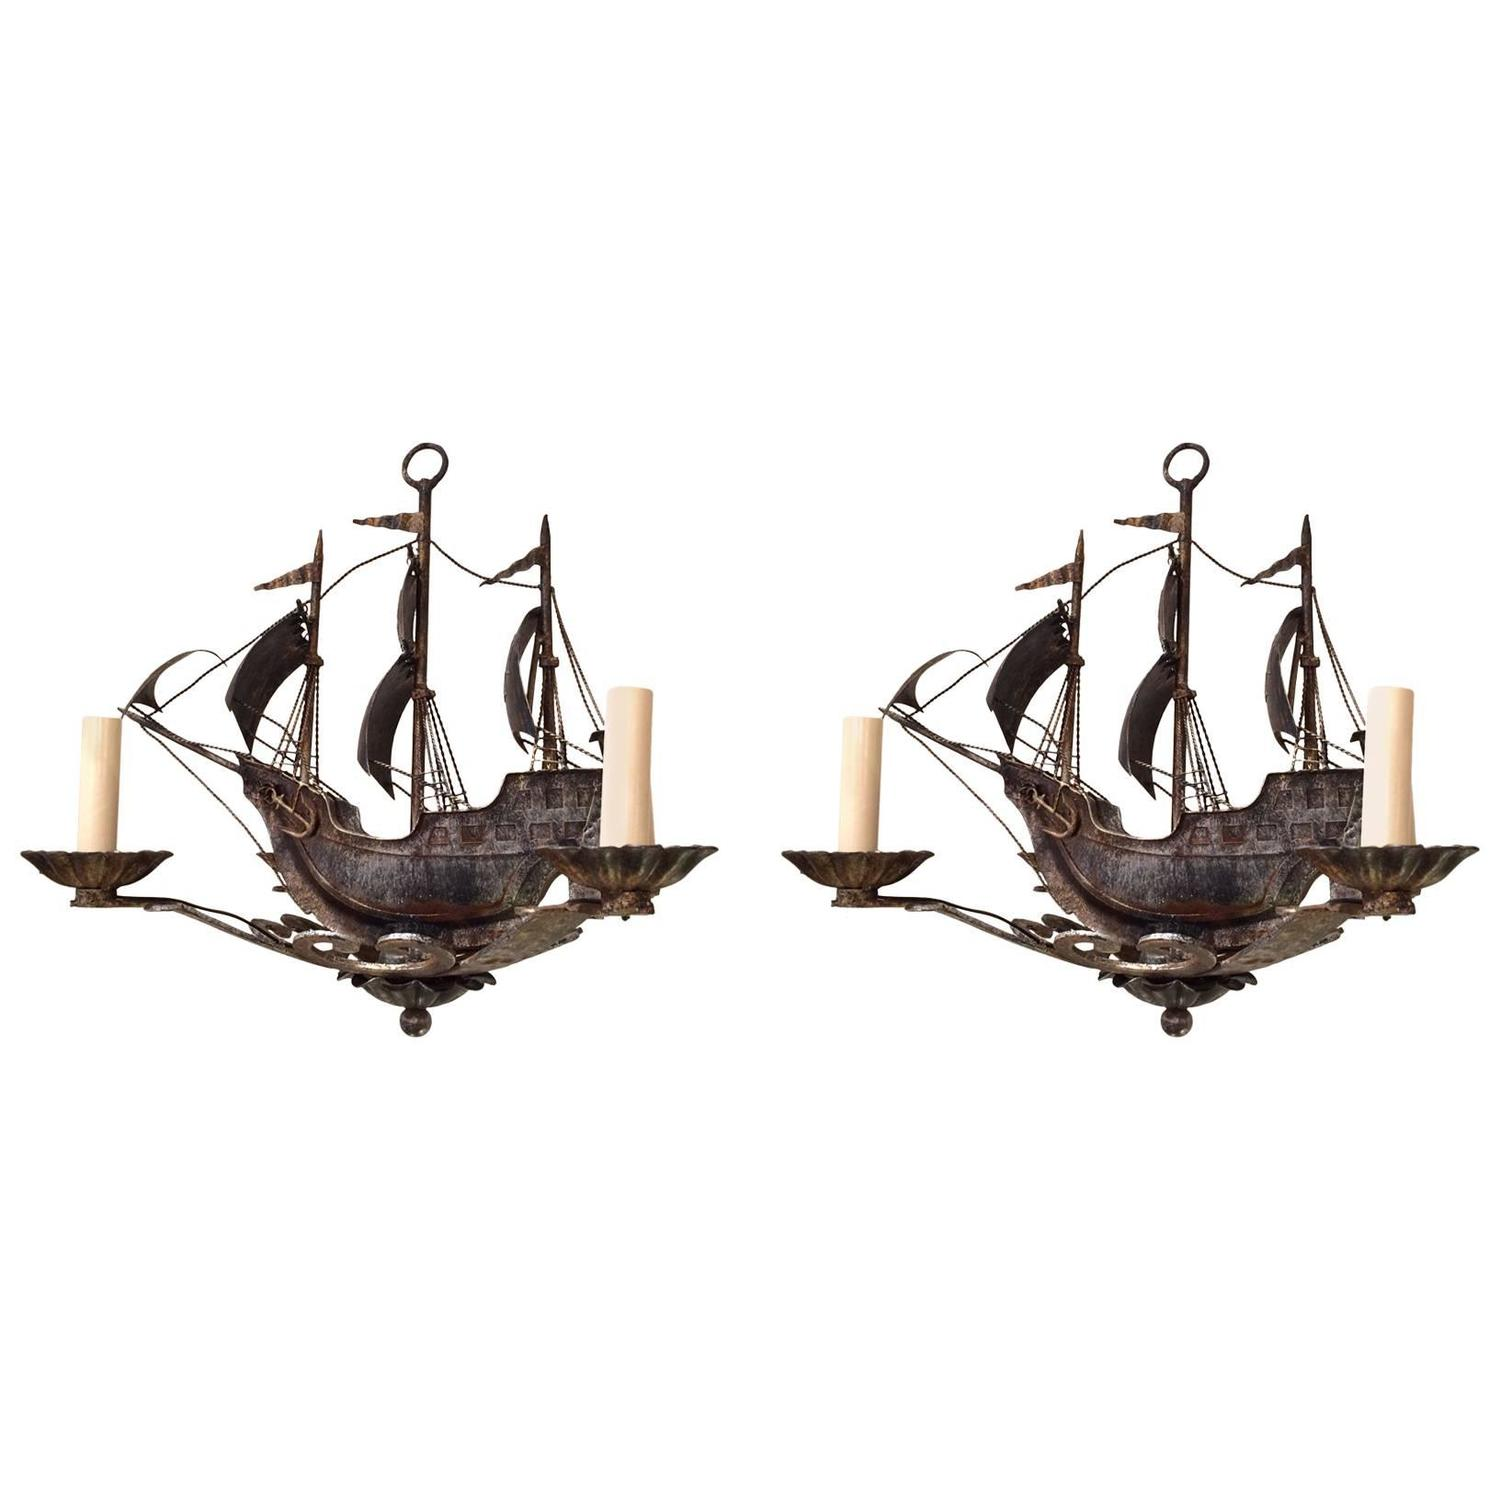 Pair of nantucket old world iron sailing ship chandeliers at 1stdibs aloadofball Choice Image